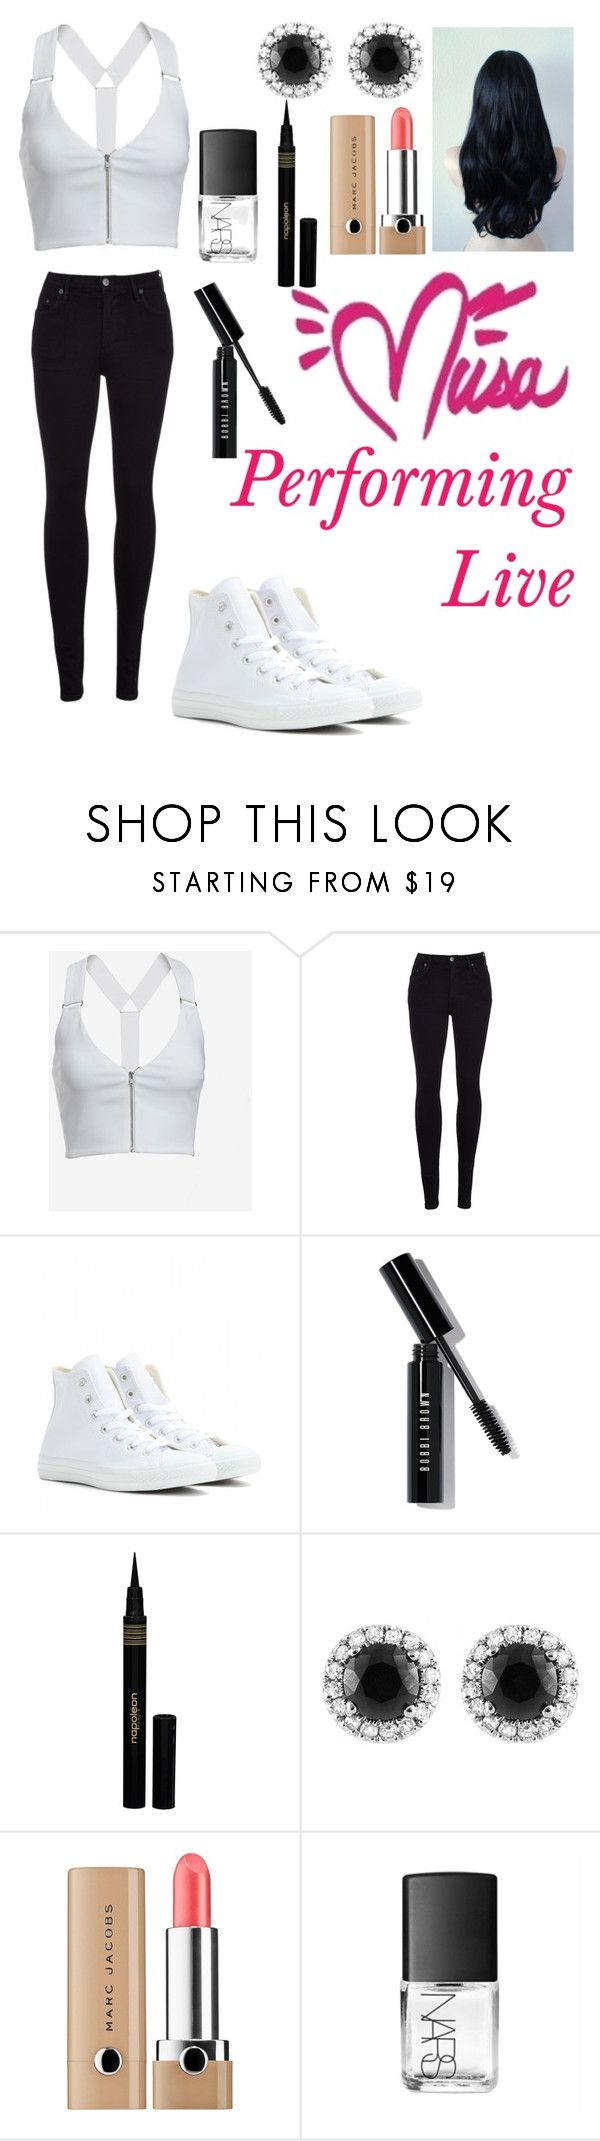 """""""Musa Concert wear"""" by a5-the-glue ❤ liked on Polyvore featuring A.L.C., Citizens of Humanity, Converse, Bobbi Brown Cosmetics, Napoleon Perdis, Beverly Hills Charm, Marc Jacobs and NARS Cosmetics"""